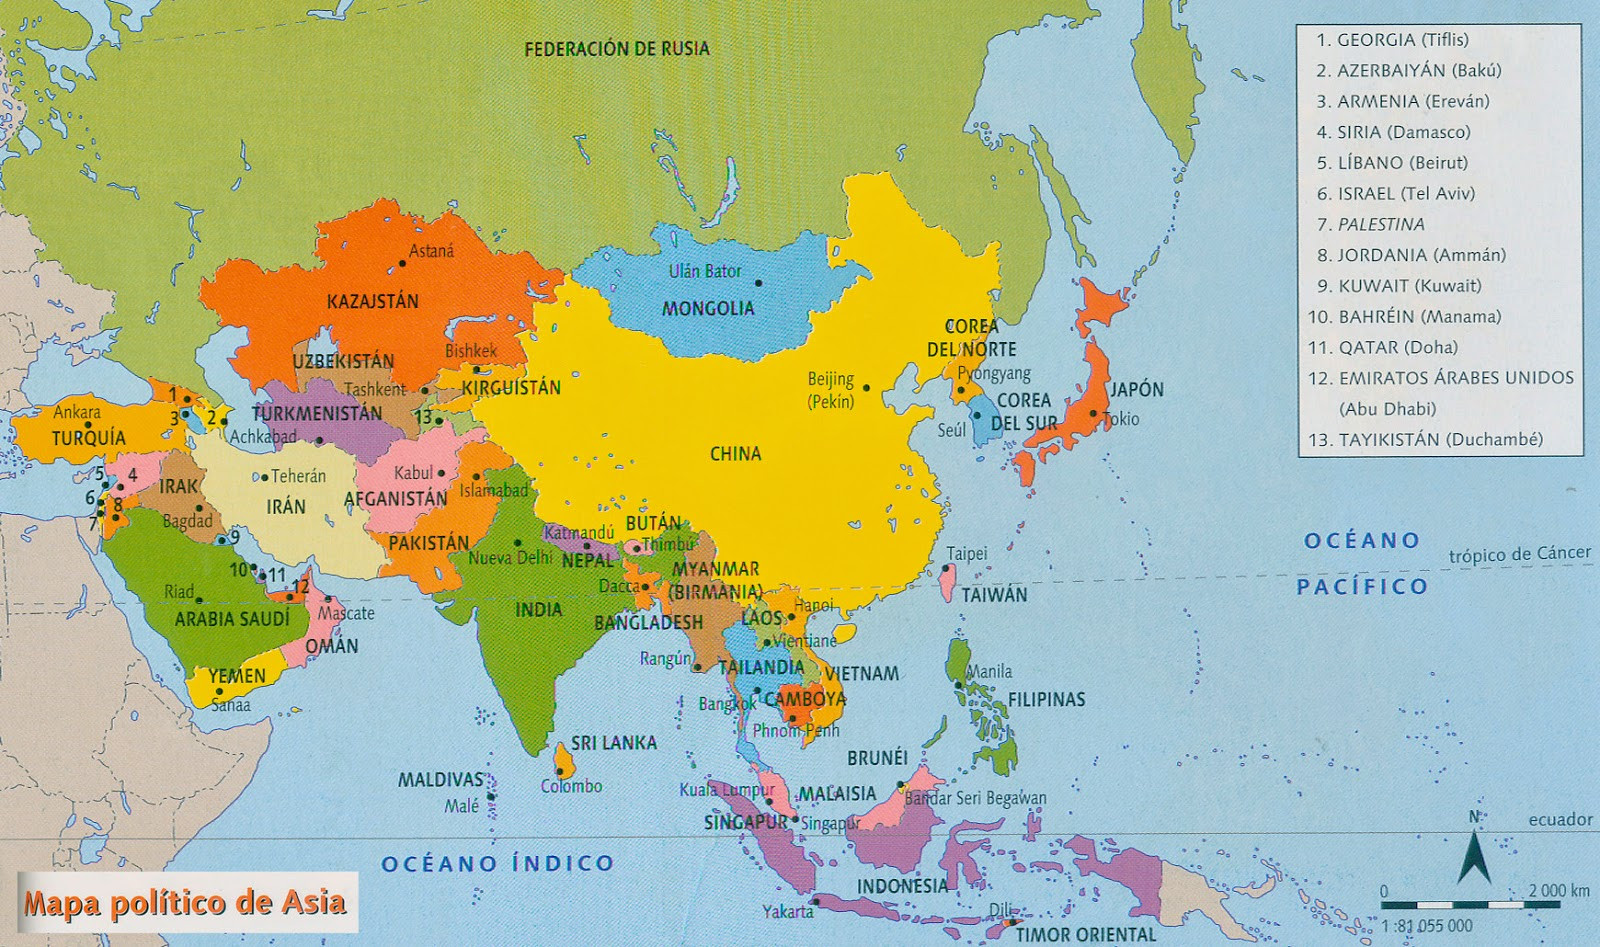 6th Grade Map Of Asia.Science At School Geography 6th Grade